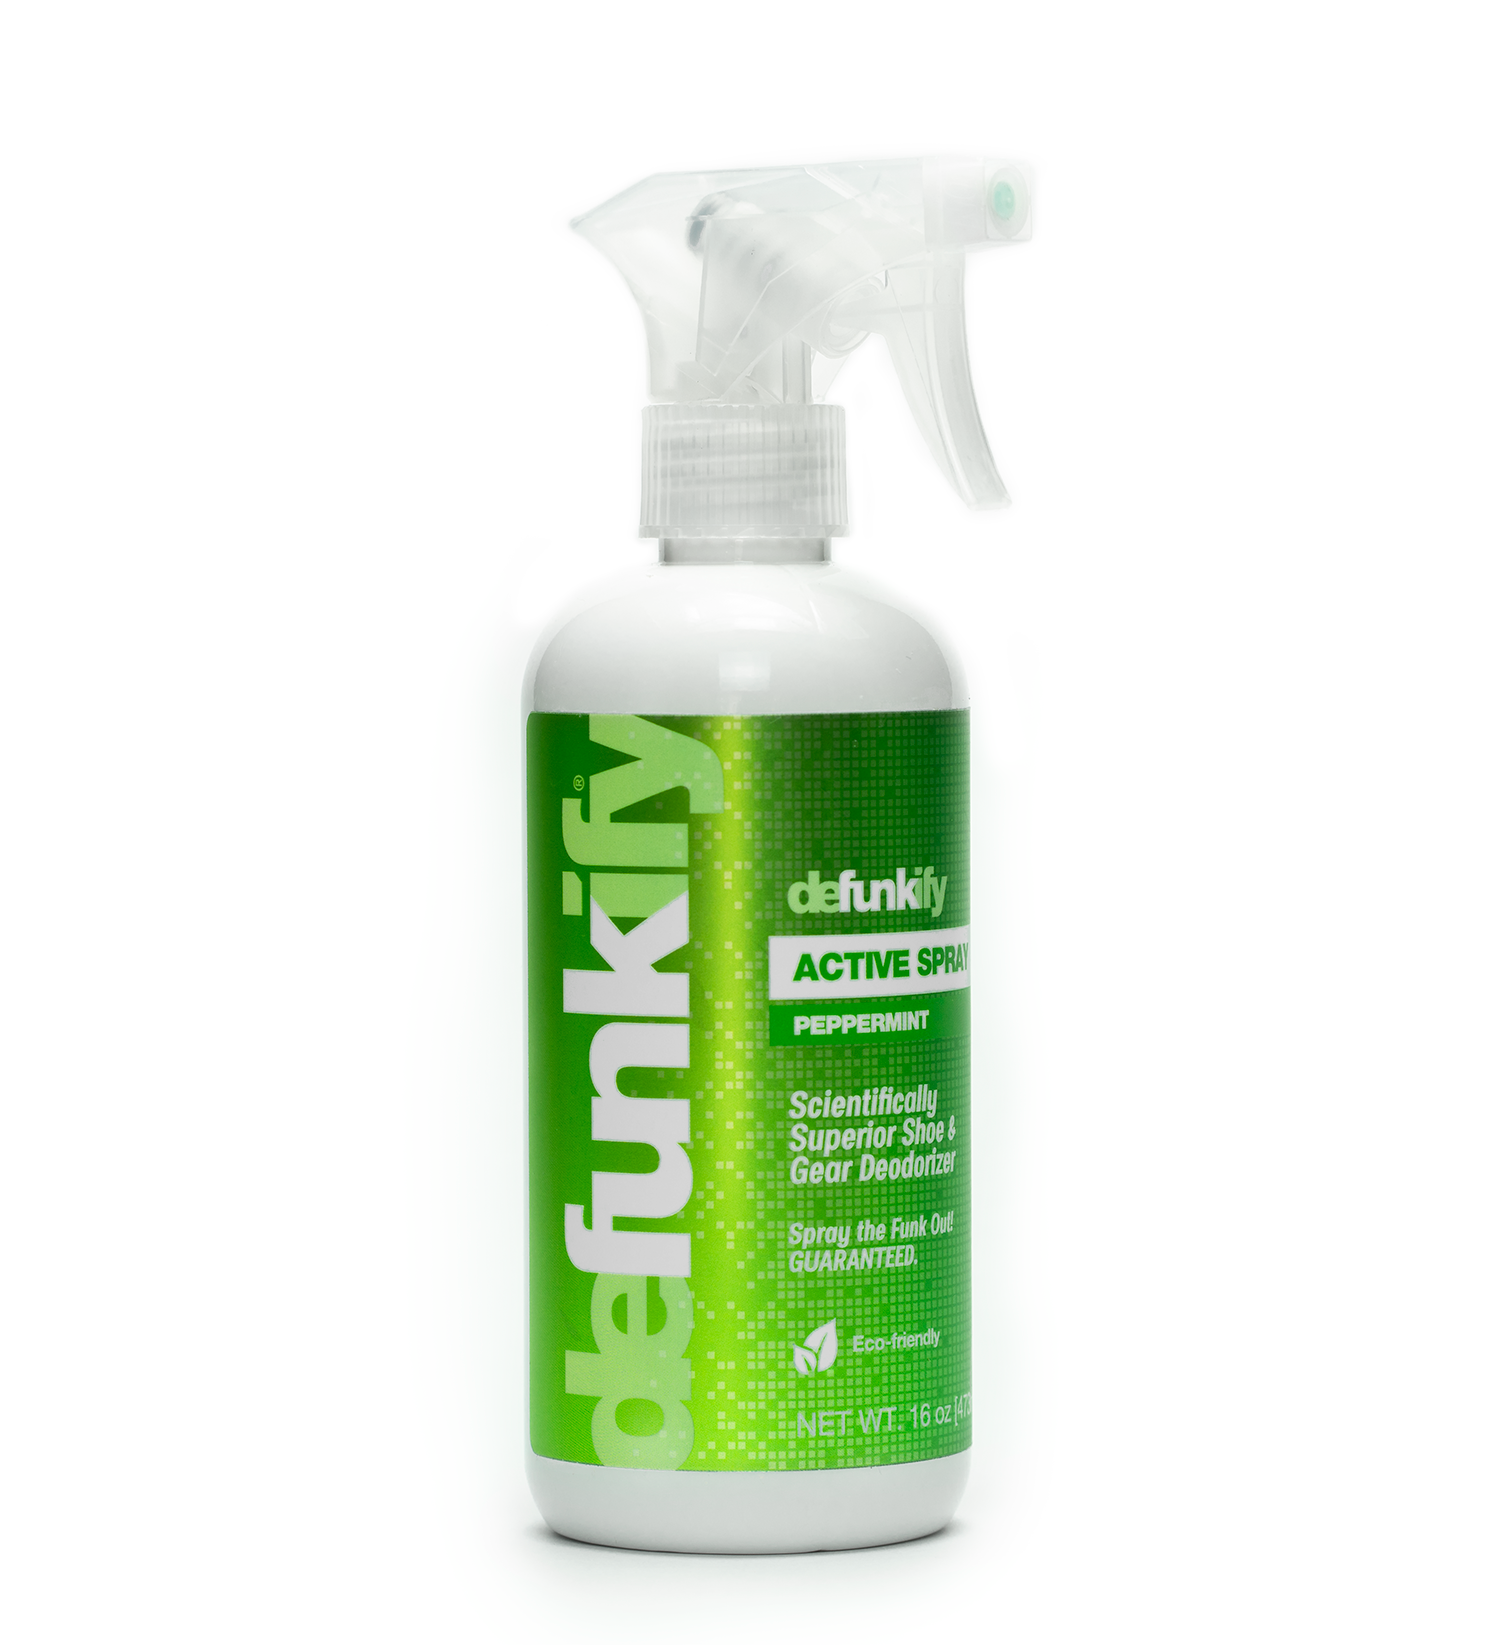 Defunkify Peppermint Fabric • Shoe • Gear Deodorizer Spray